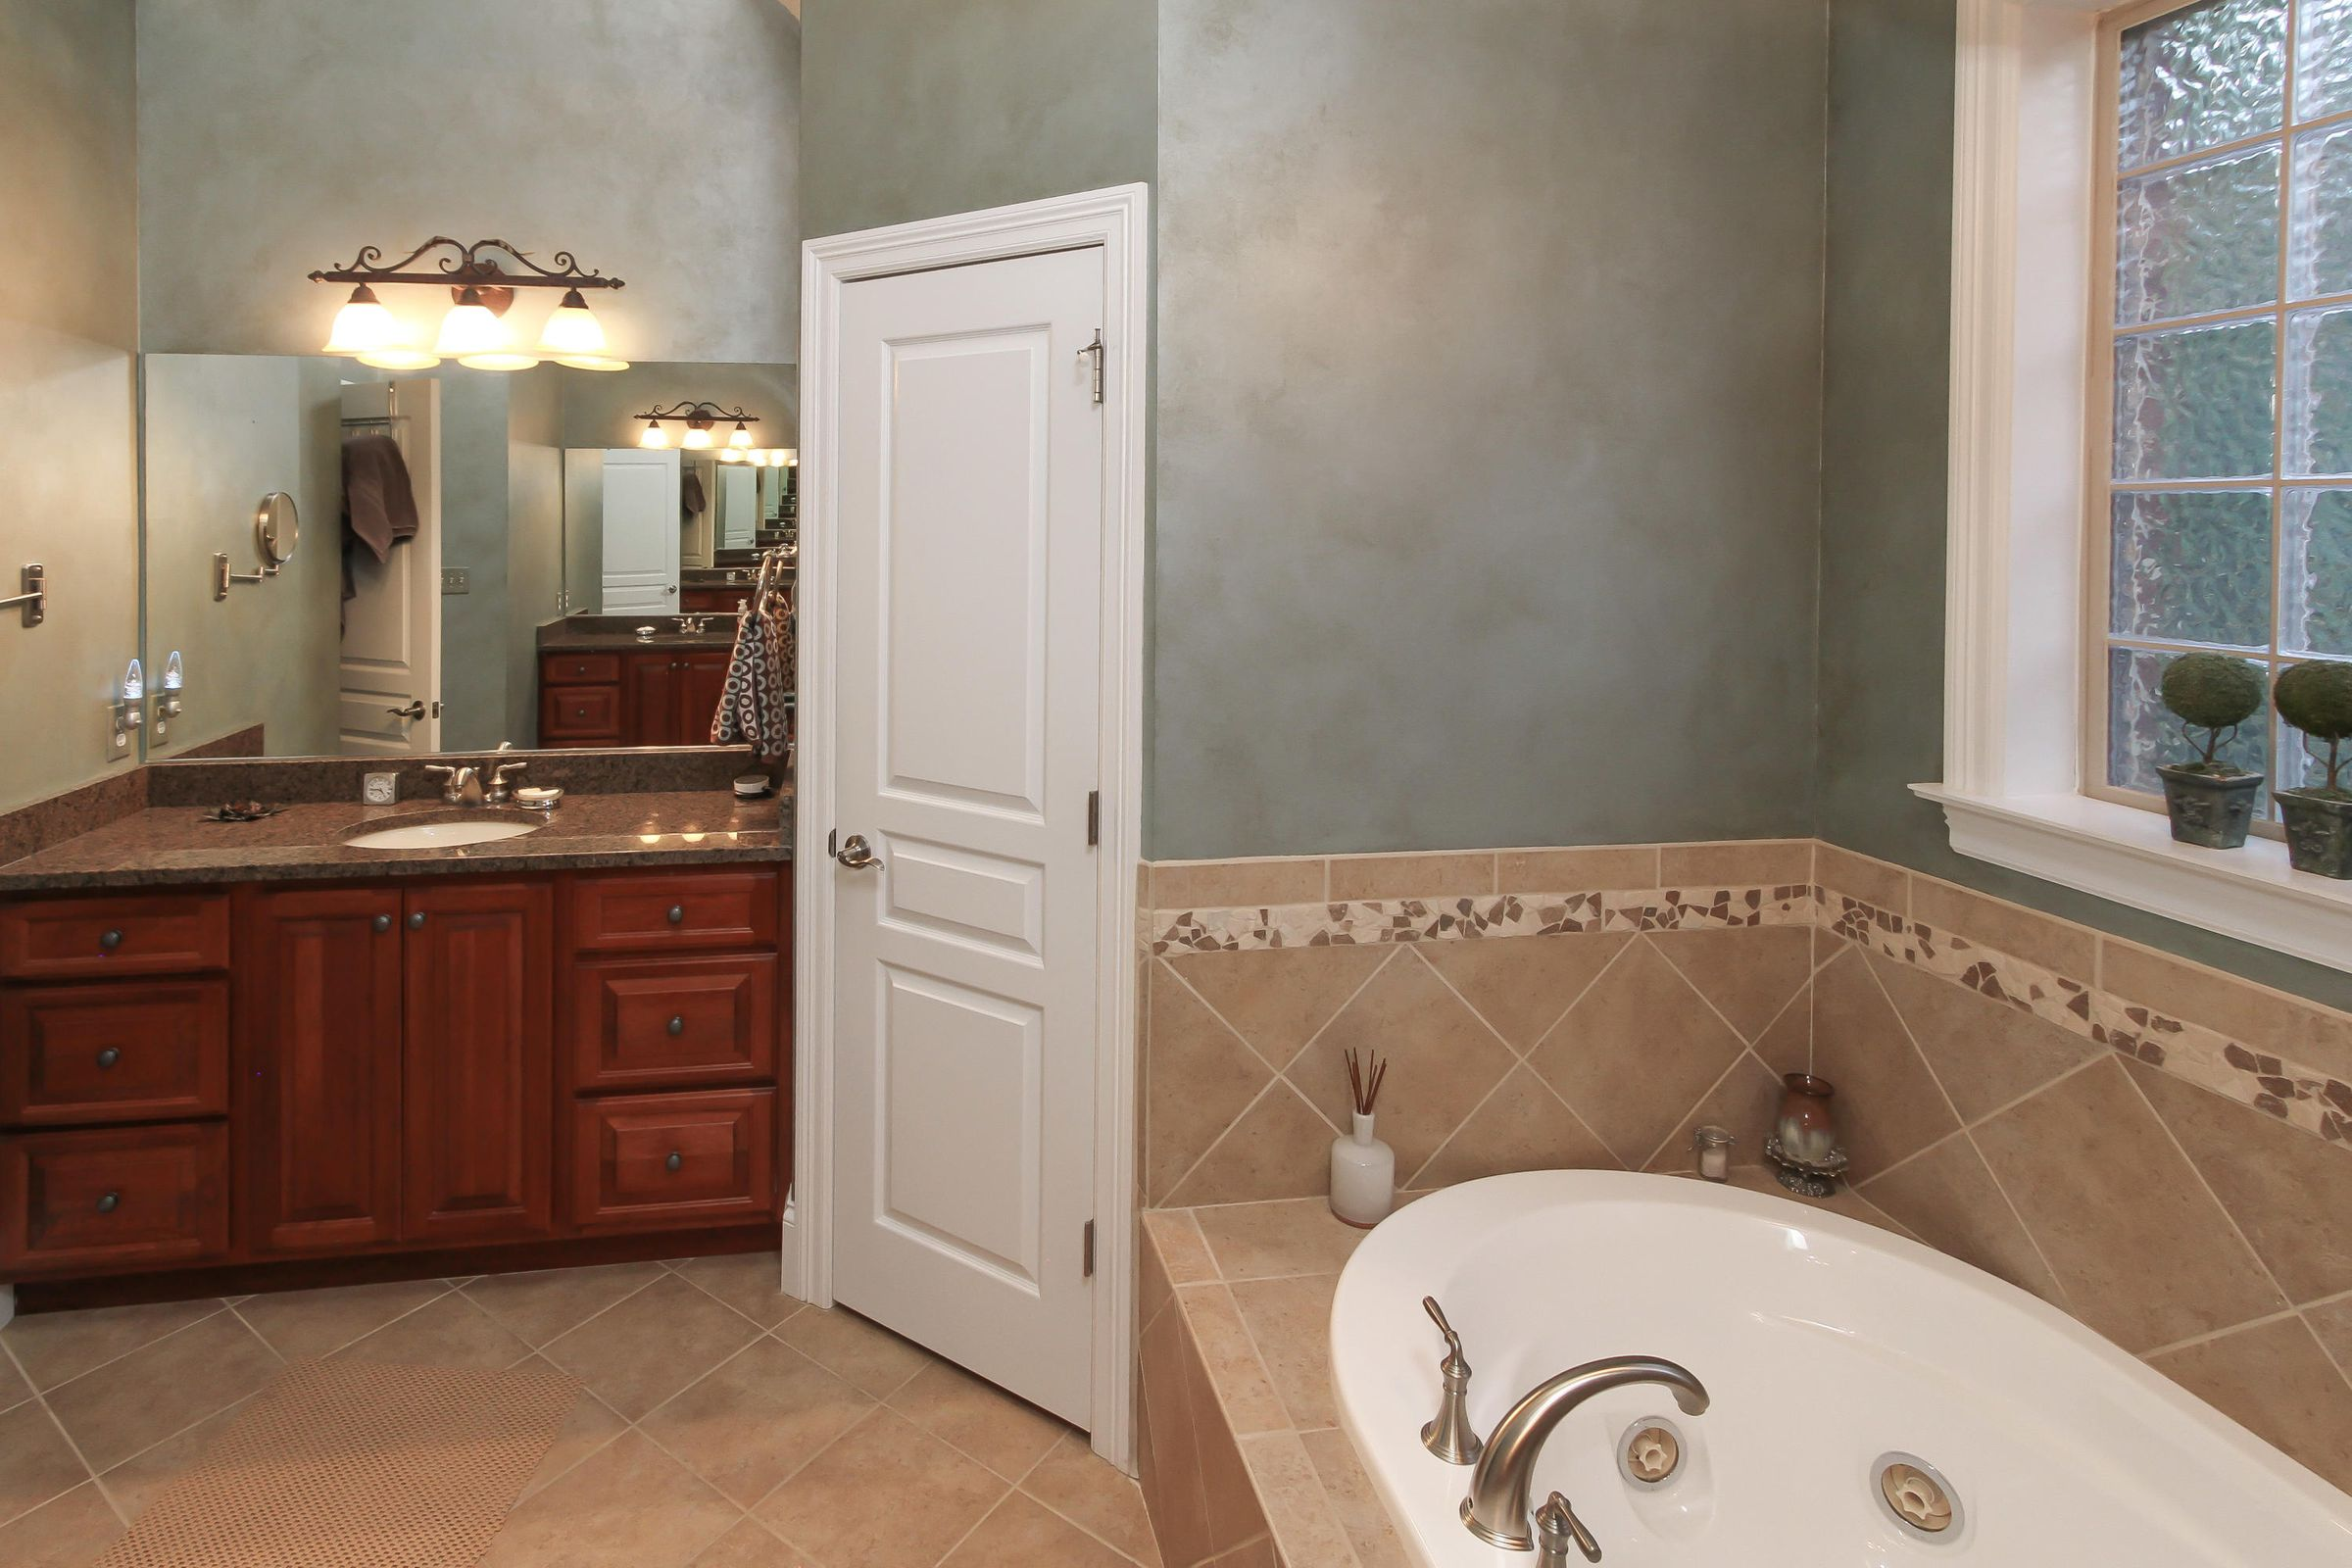 17 - Master Bath with Separate Vanities